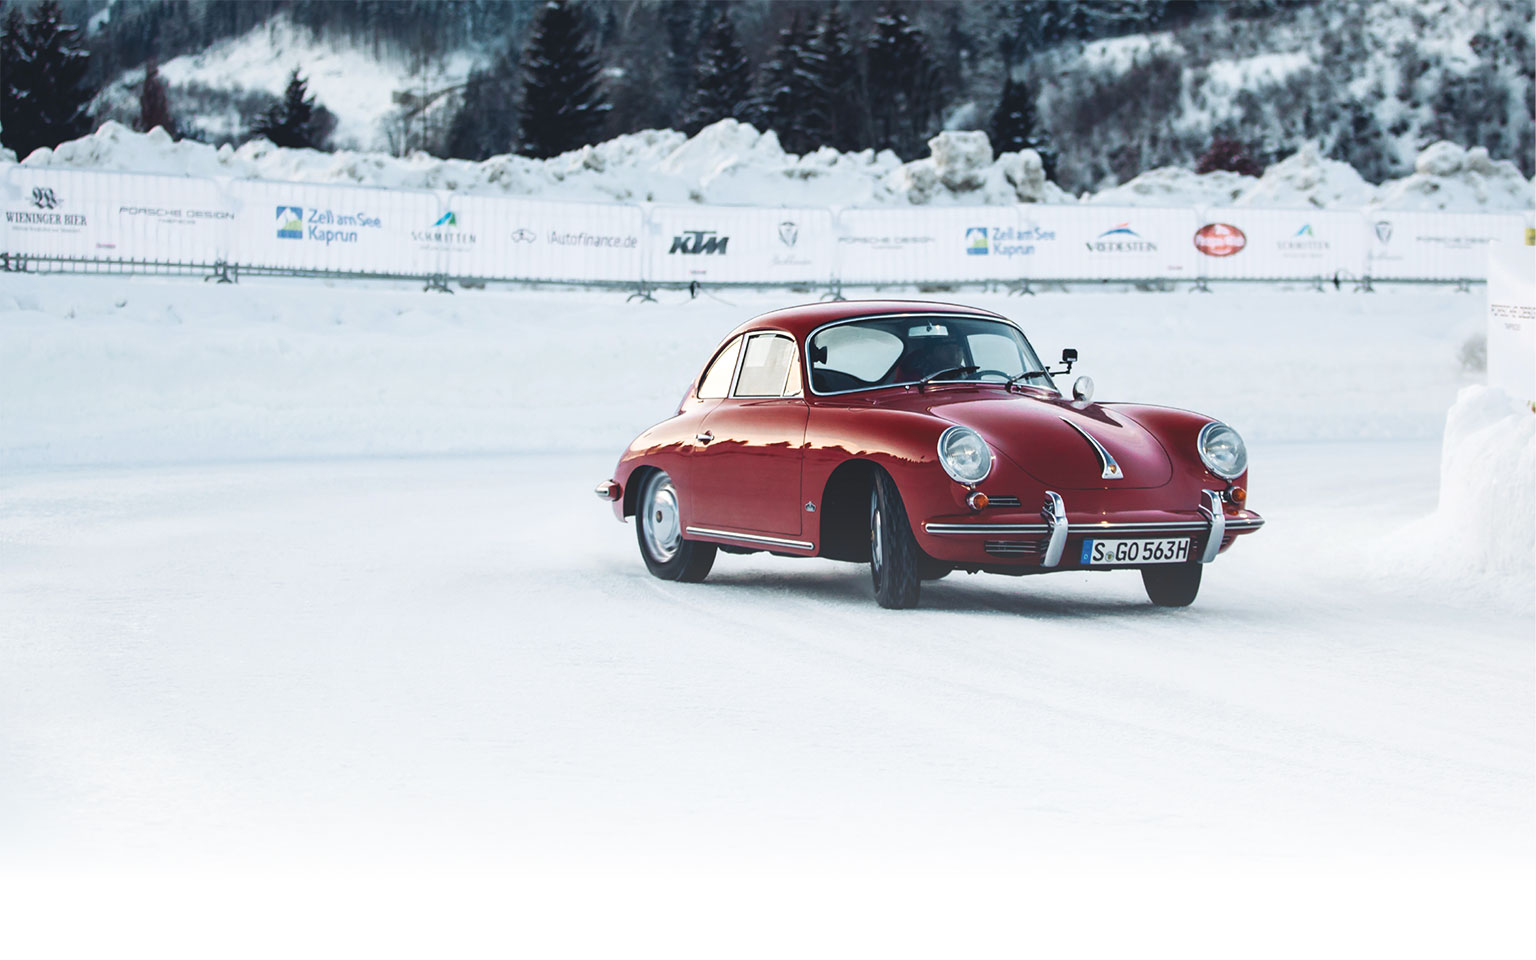 Mark Webber swapped his old Porsche 919 LMP1 for a dainty 356, which kept him entertained